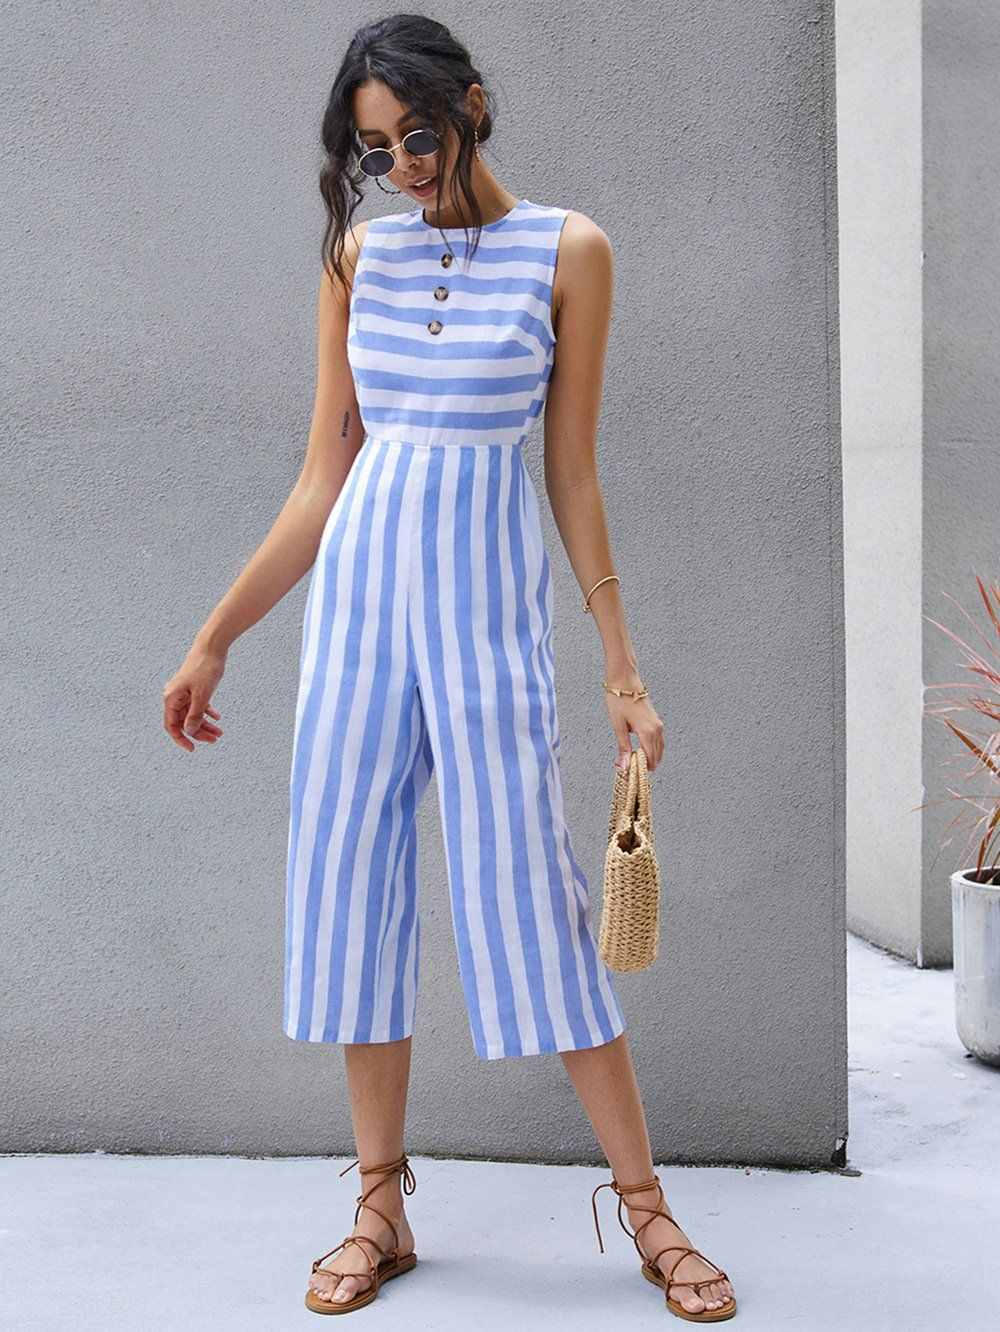 Flat sandals as a type of shoe to wear with jumpsuit